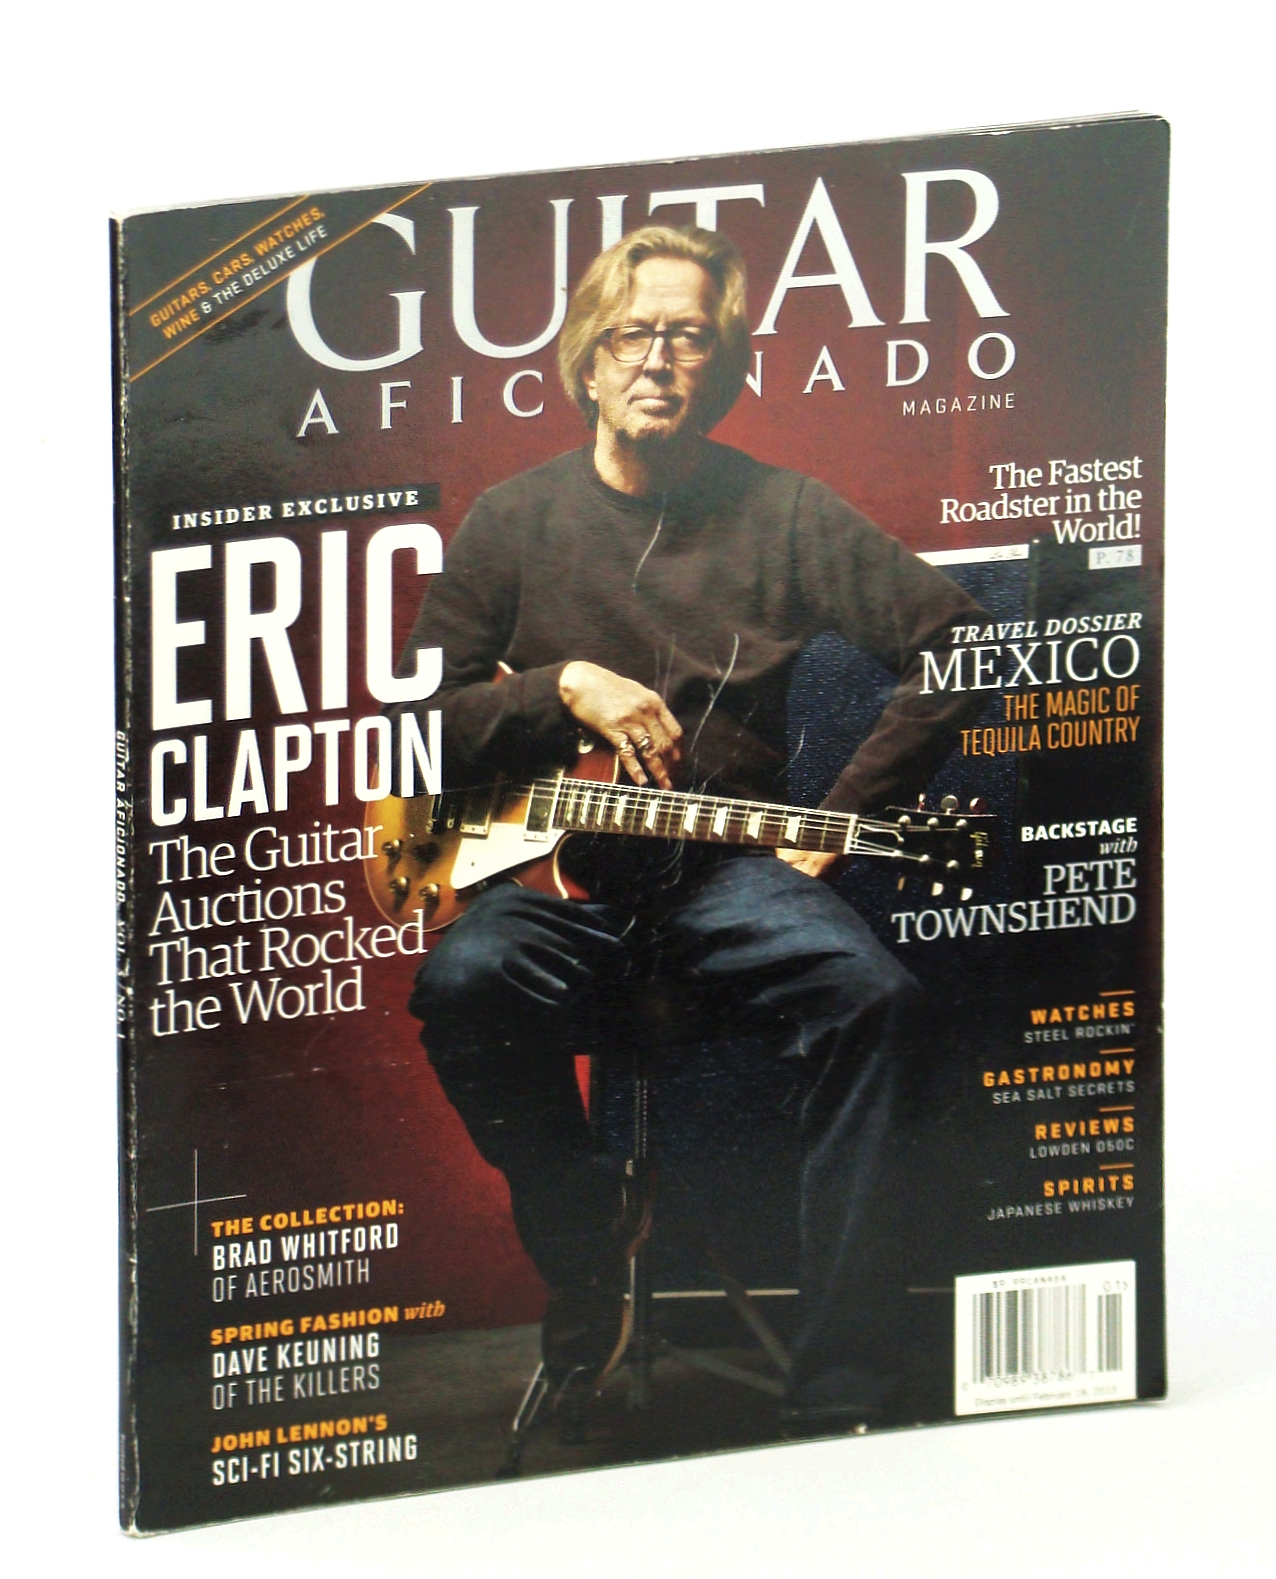 Image for Guitar Aficionado Magazine January/February 2013